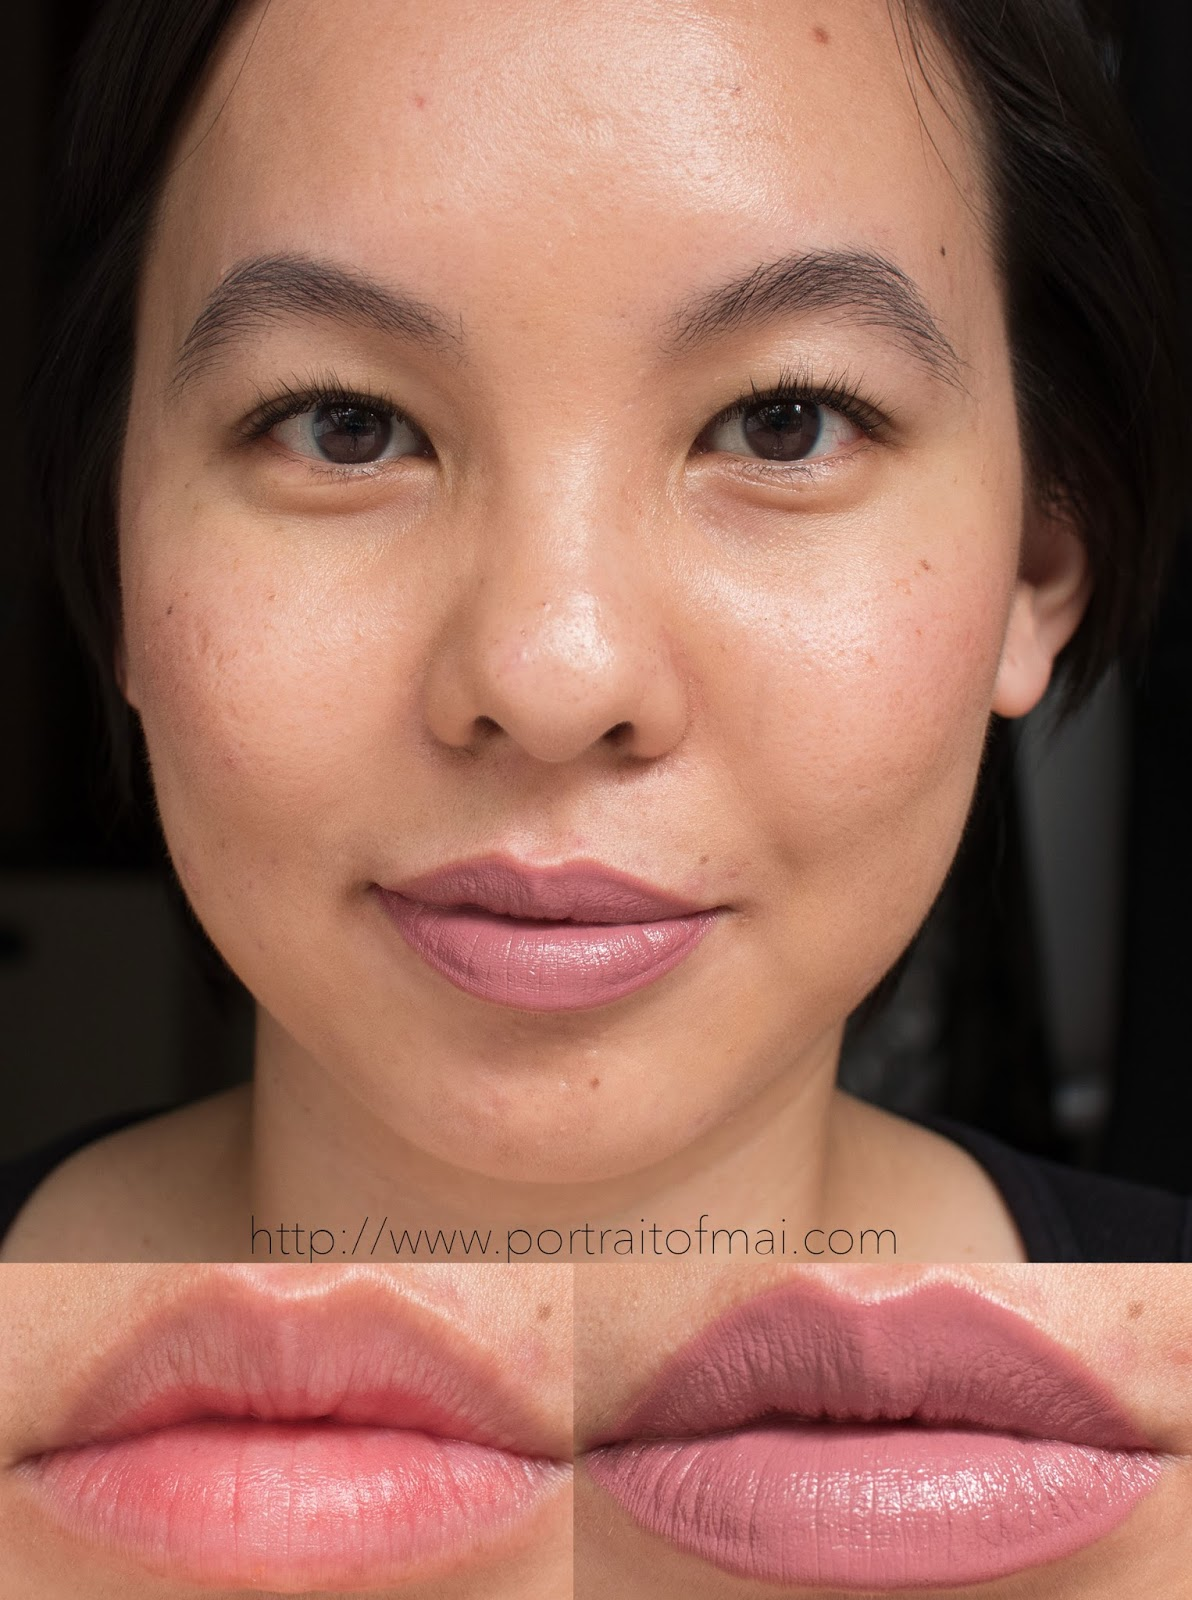 Makeup Geek Lip Products Iconic Lipstick in Shy Swatch